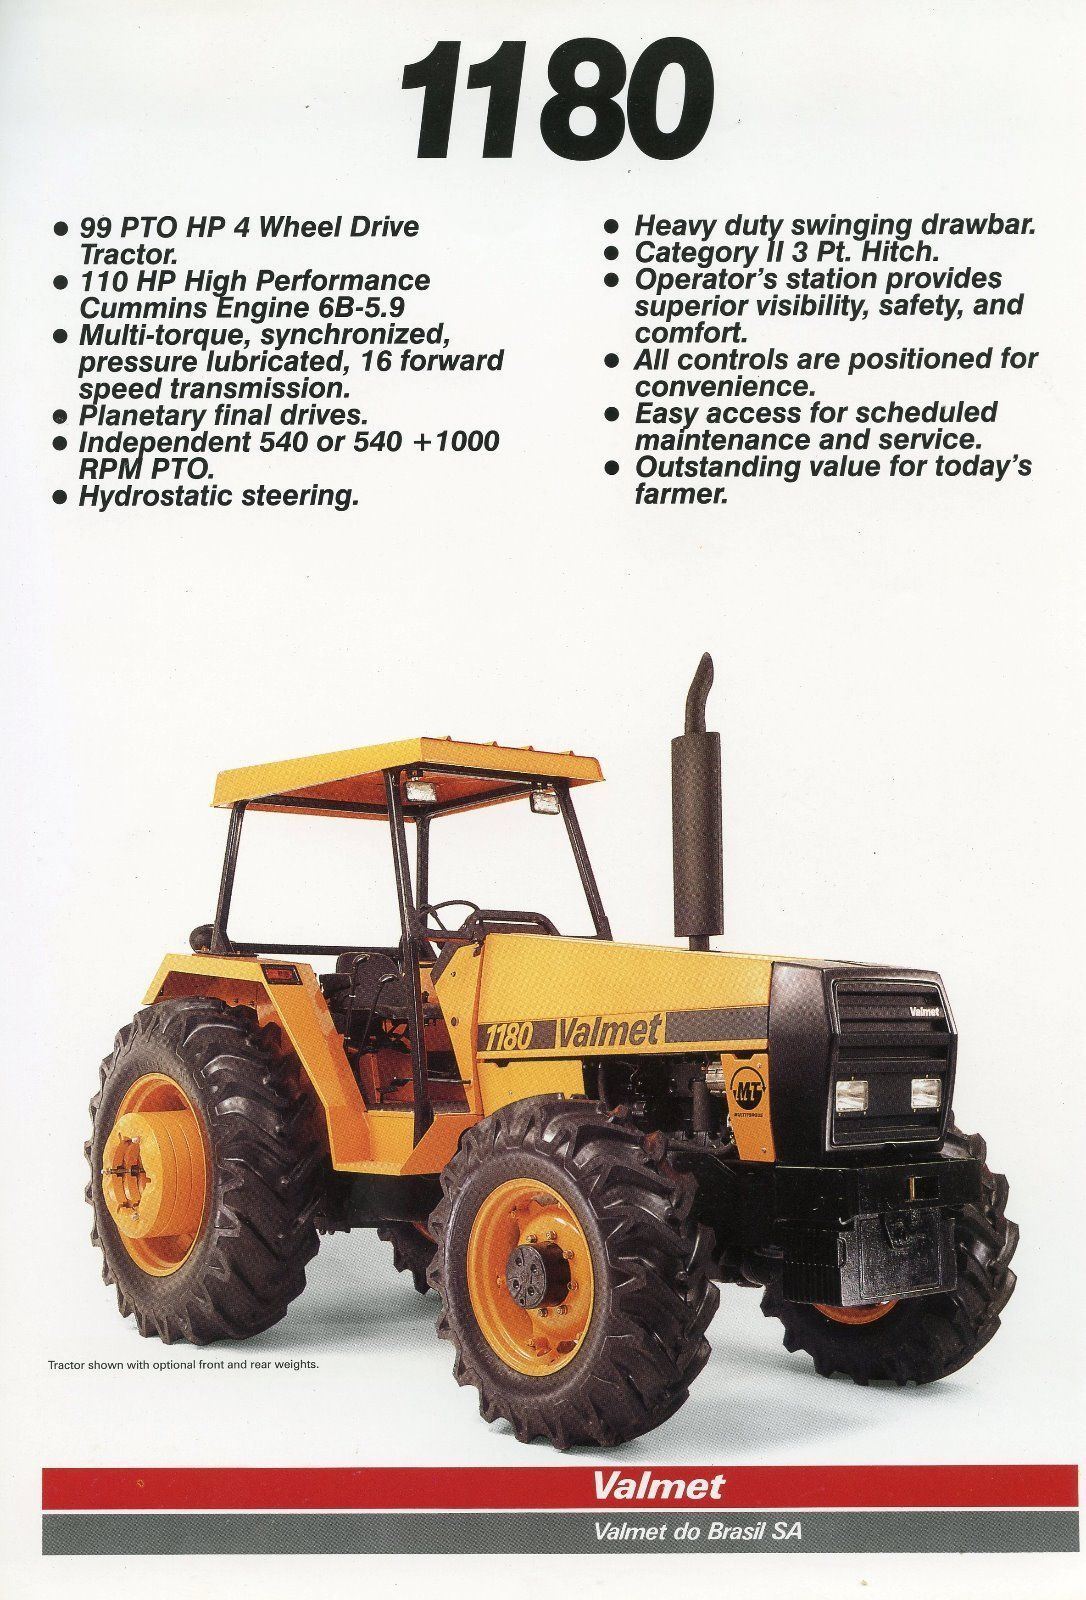 ford new holland tractor diesel fuel filters cnh tractor 84535312 valmet 1180 tractor leaflet brazilian made tractor 1 99 picclick uk [ 1086 x 1600 Pixel ]